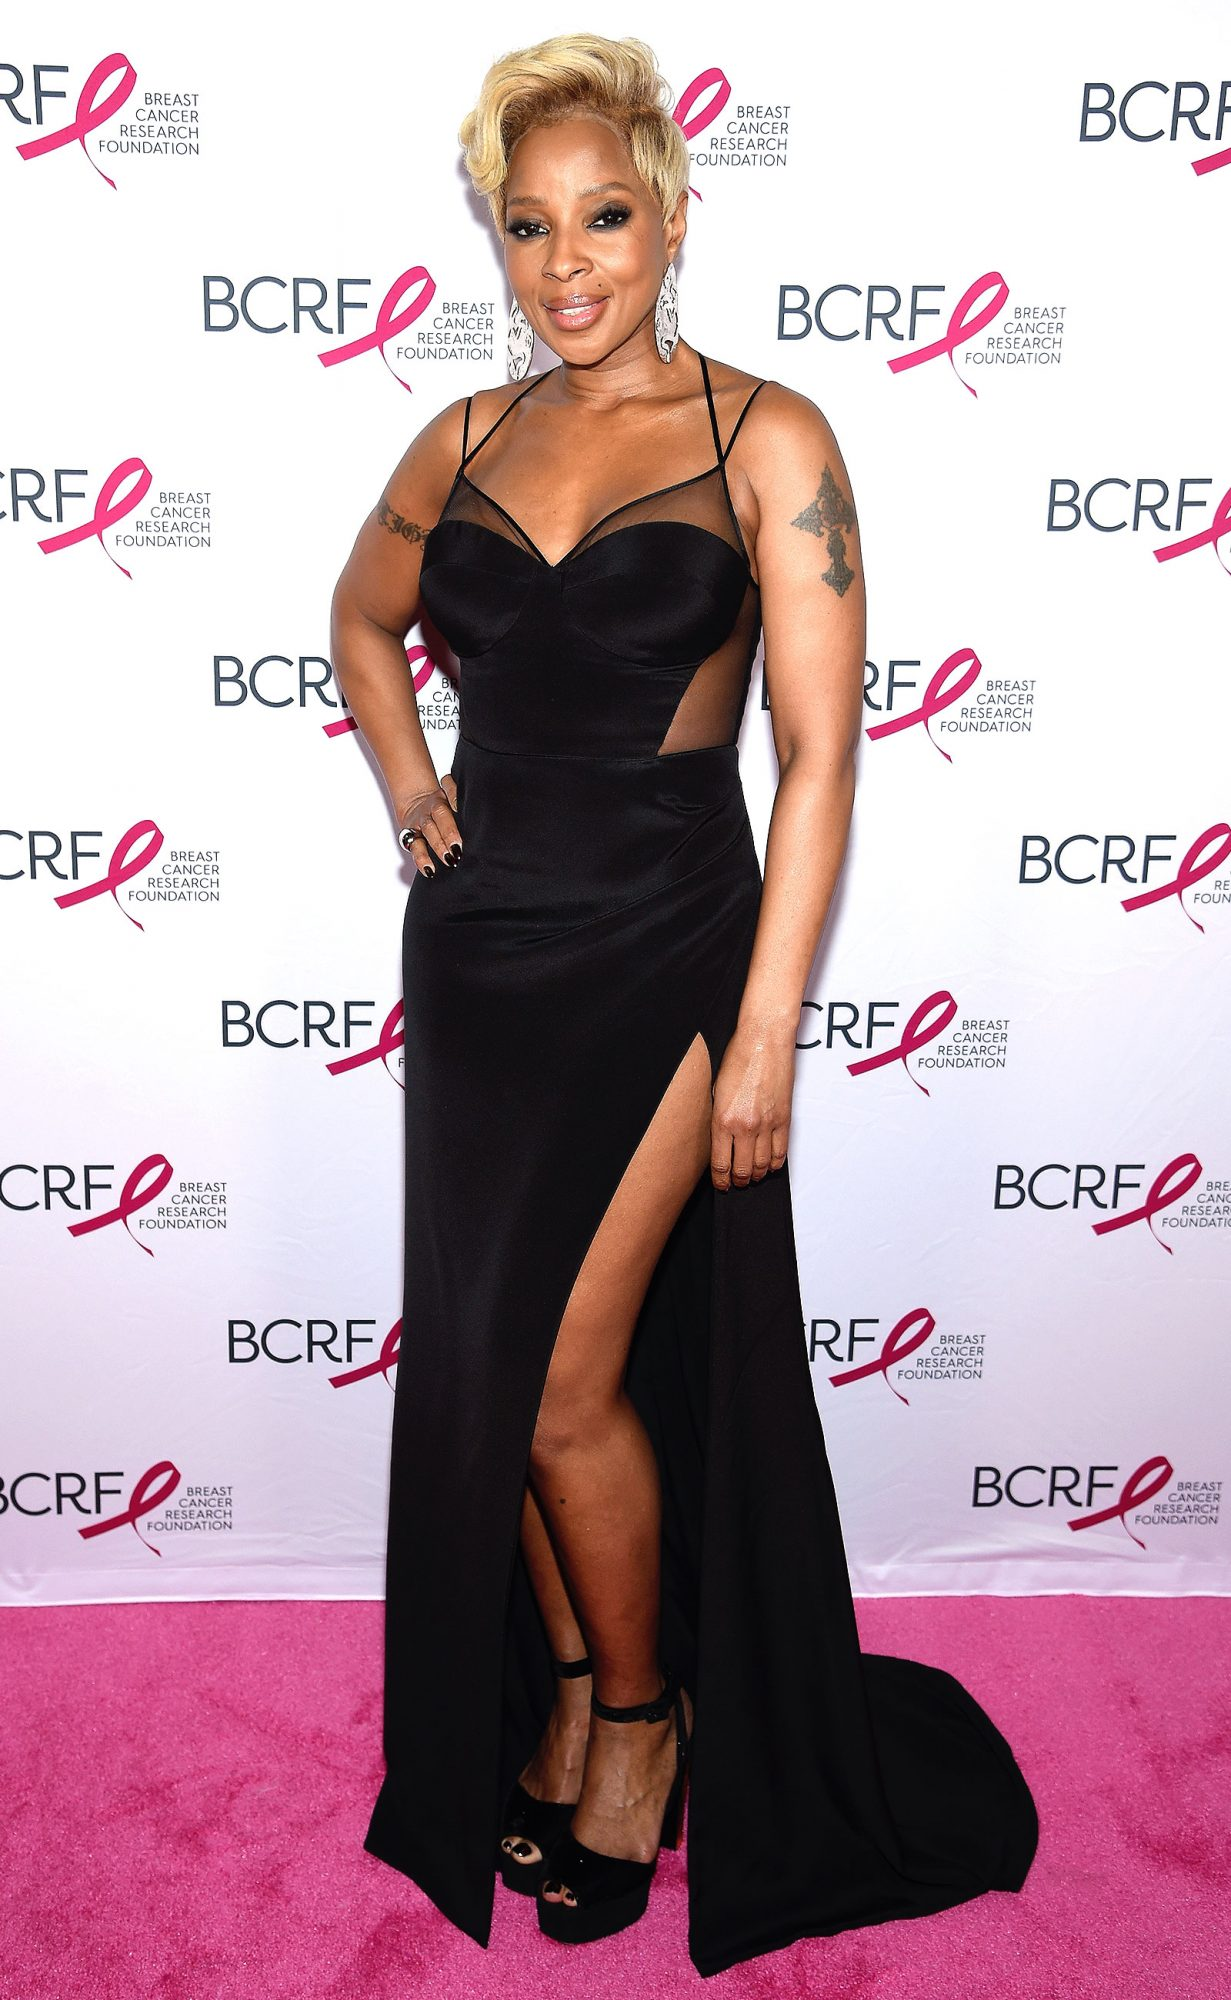 Breast Cancer Research Foundation Hot Pink Gala Hosted By Elizabeth Hurley - Arrivals